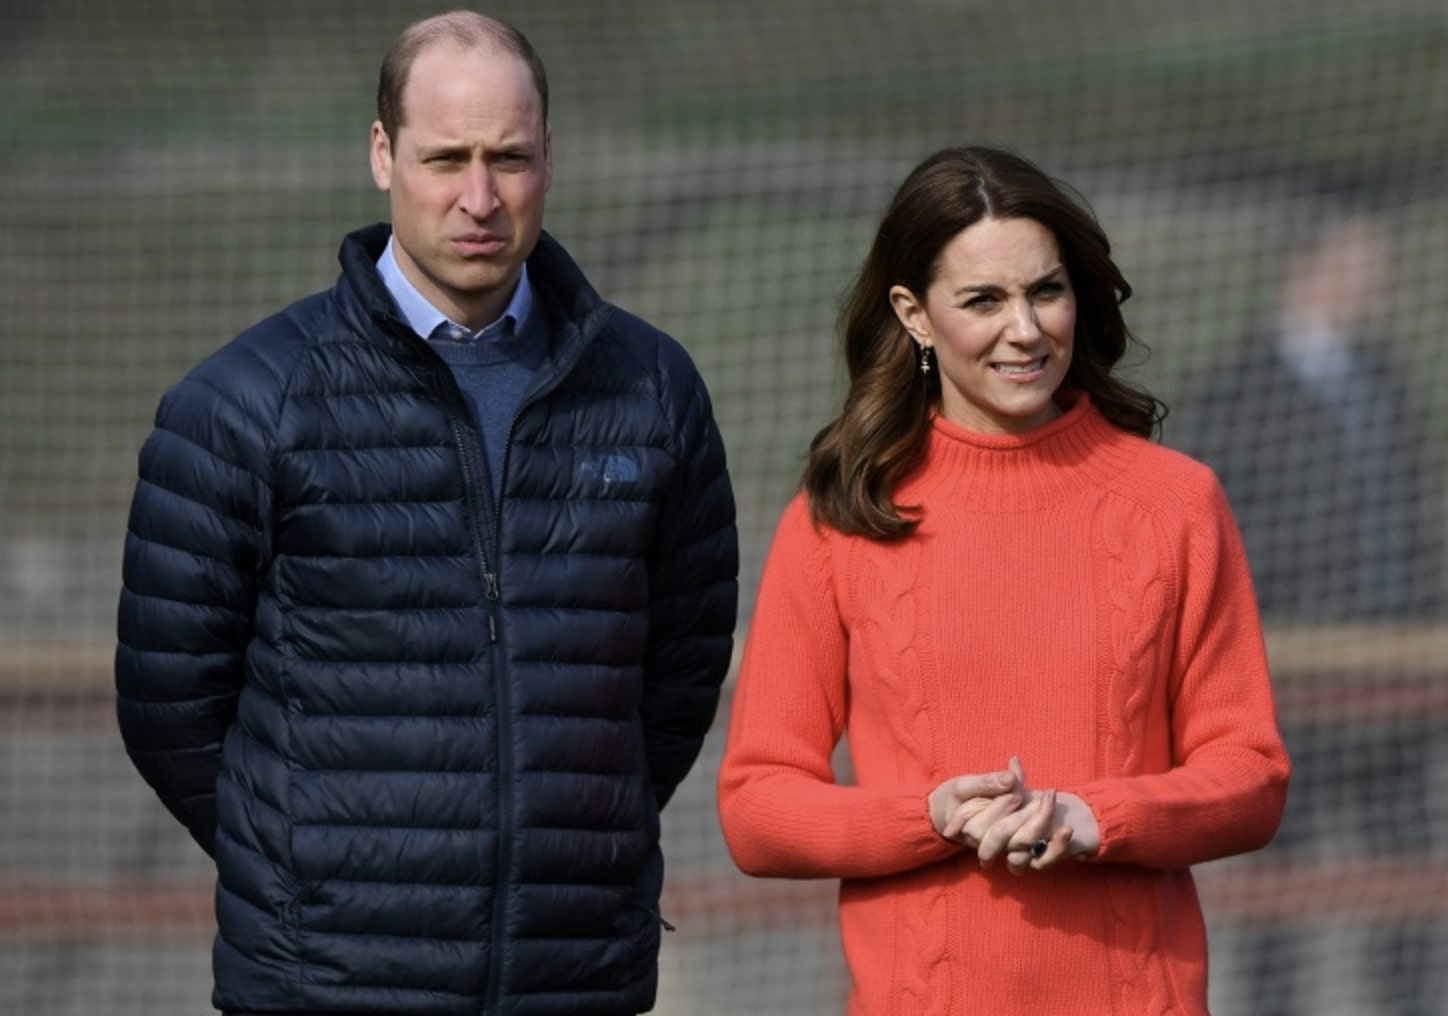 Is The Royal Family Worried About Kate Middleton Getting 'Skinny'?